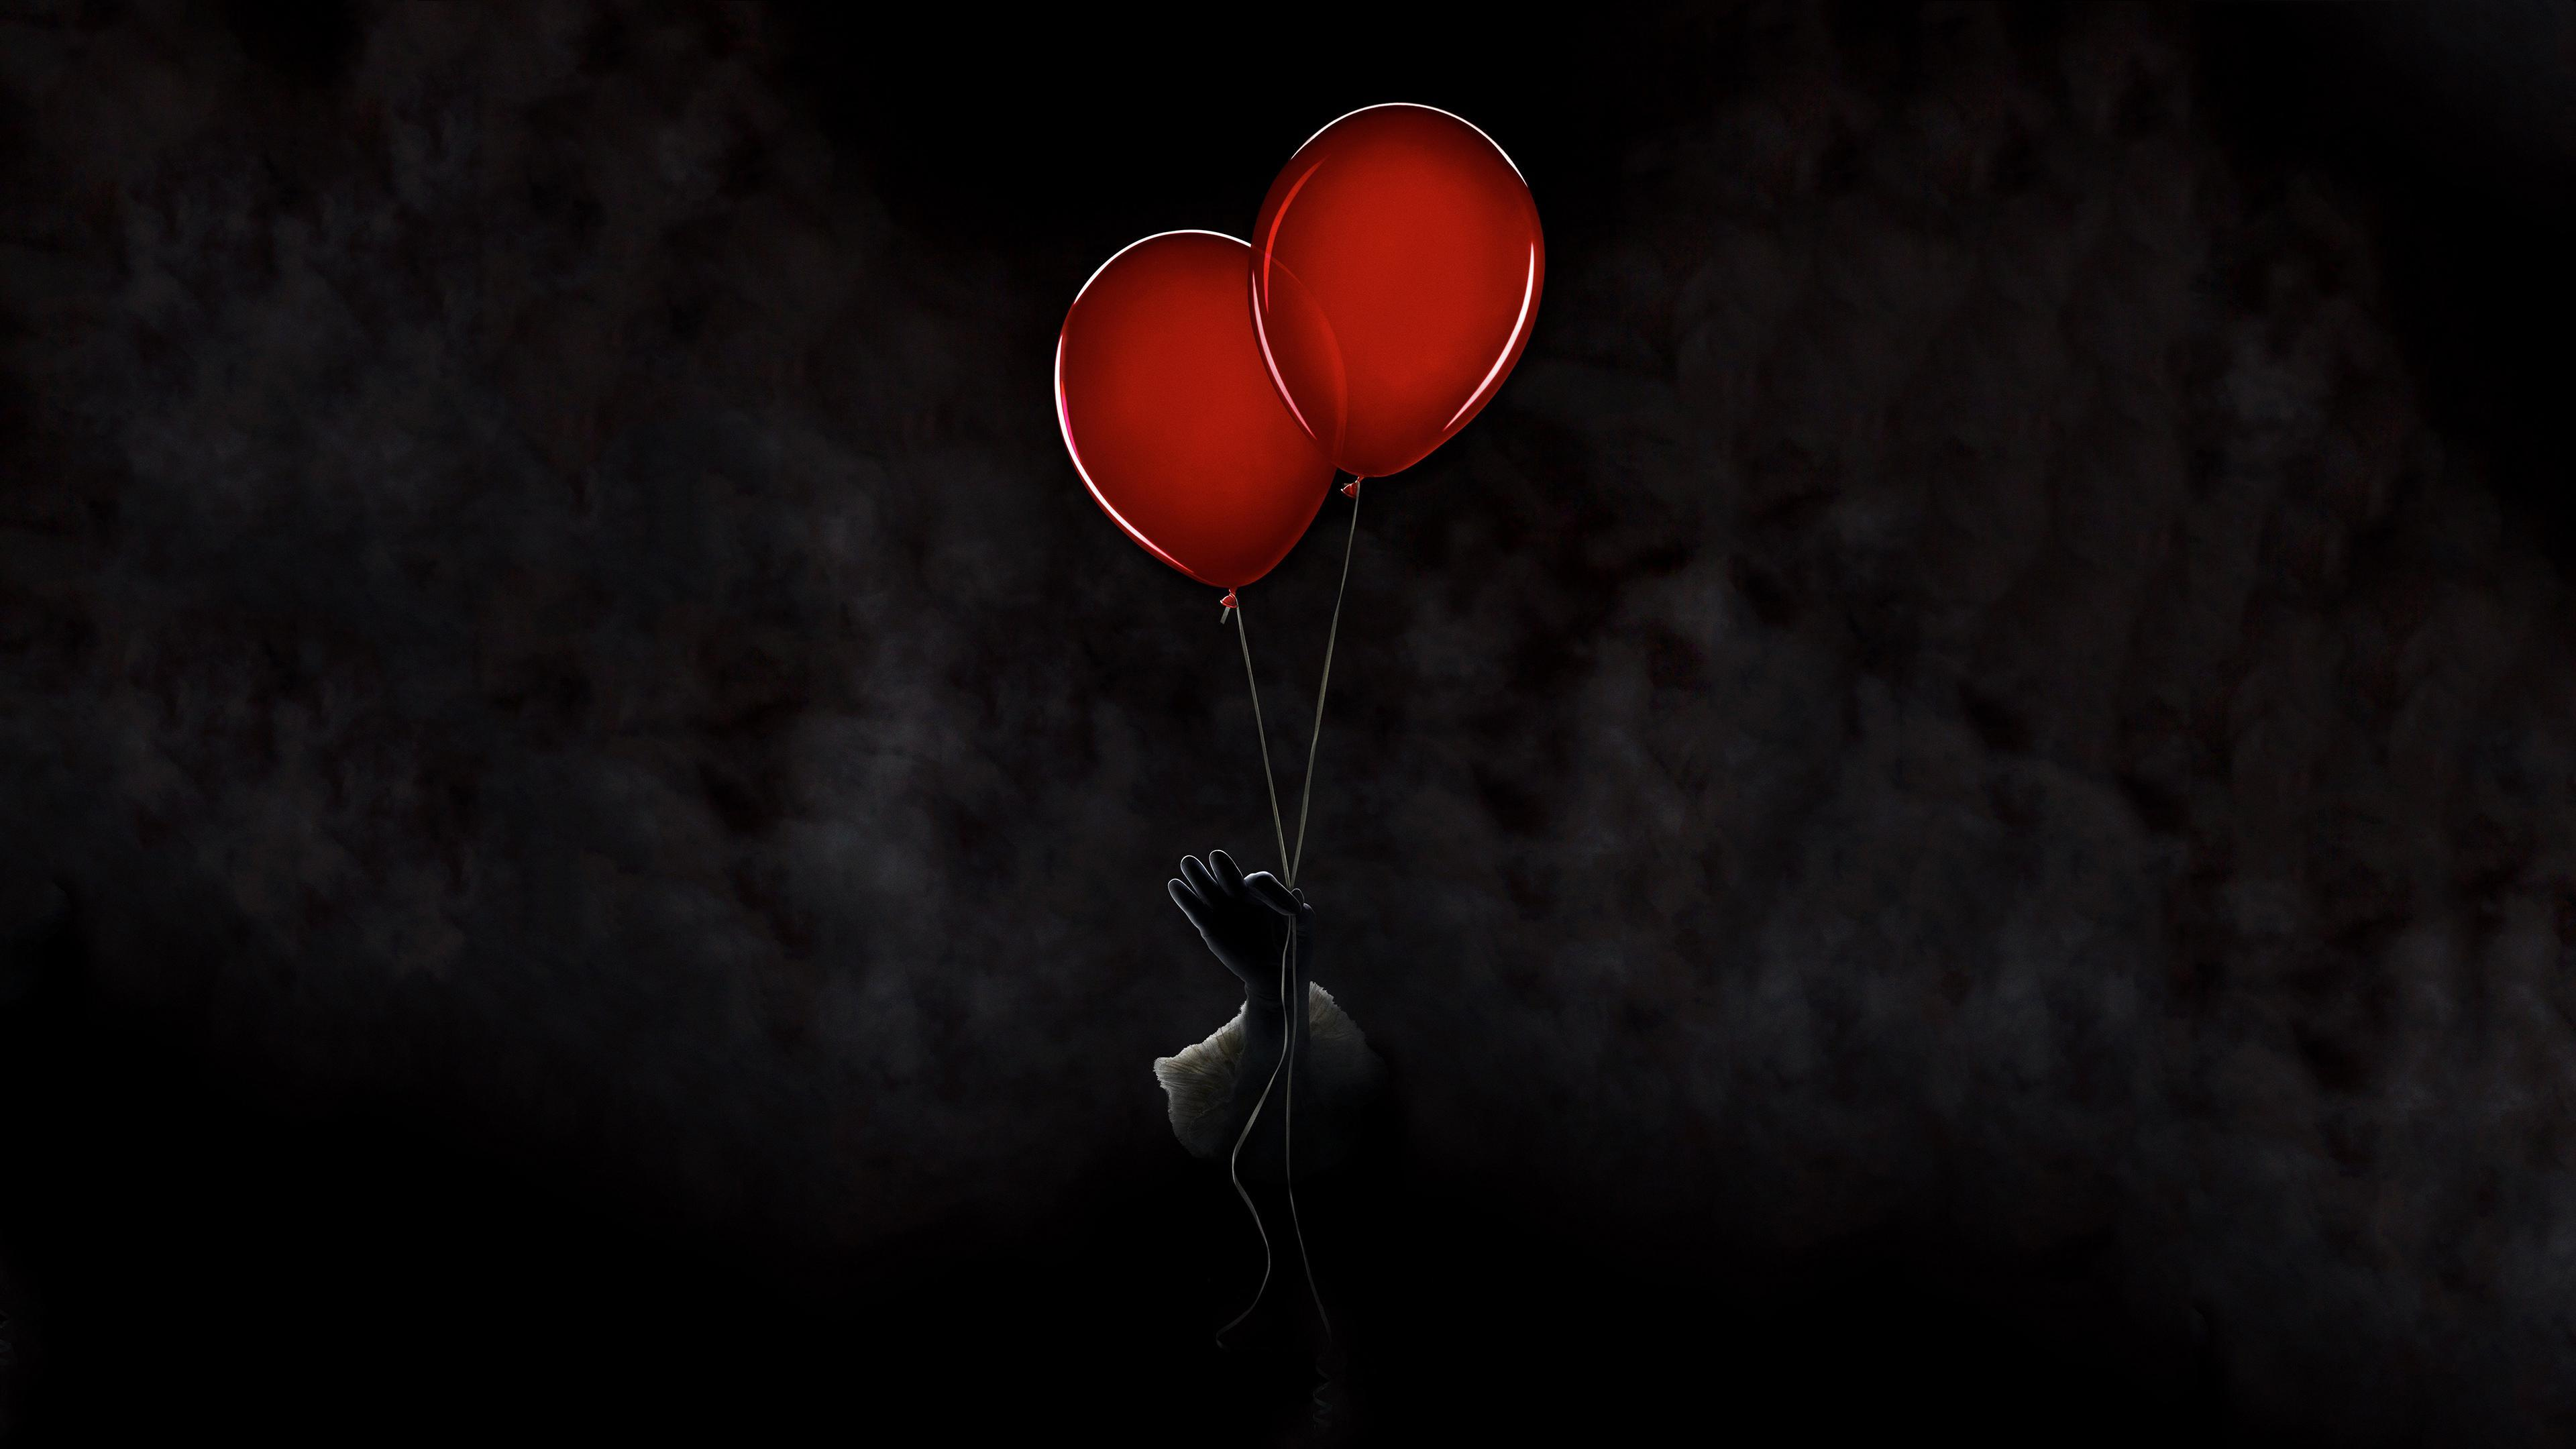 It Chapter Two, HD Movies, 4k Wallpapers, Image, Backgrounds